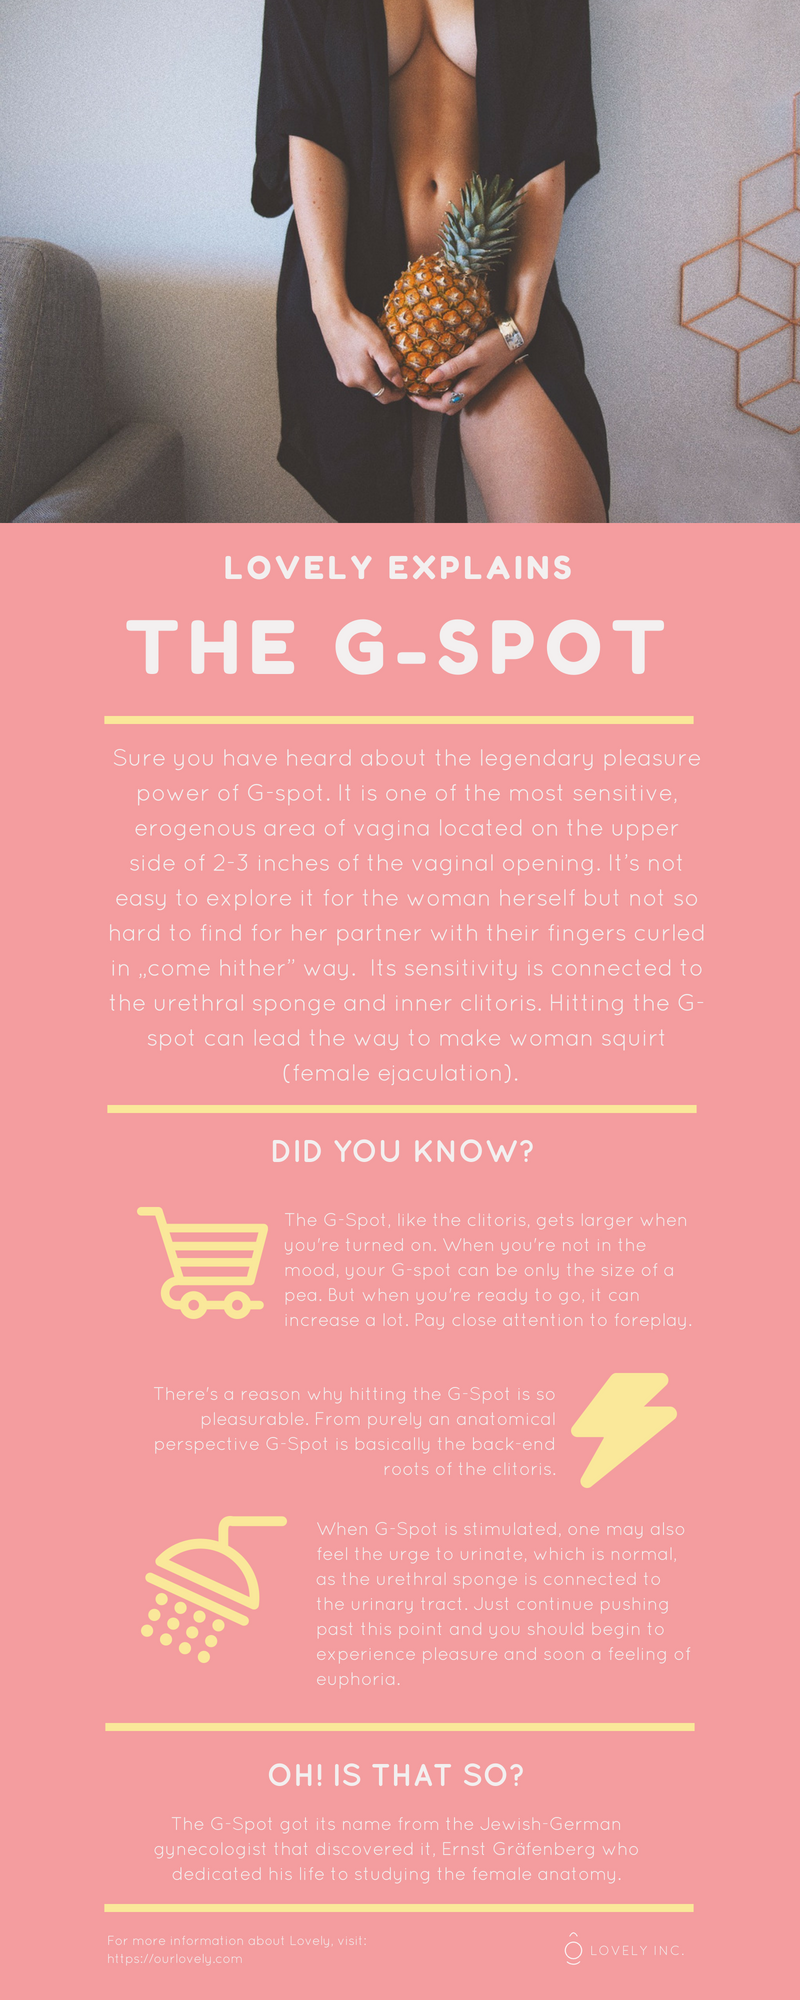 lovely_explains_the_g_spot_everything_you_need_to_know